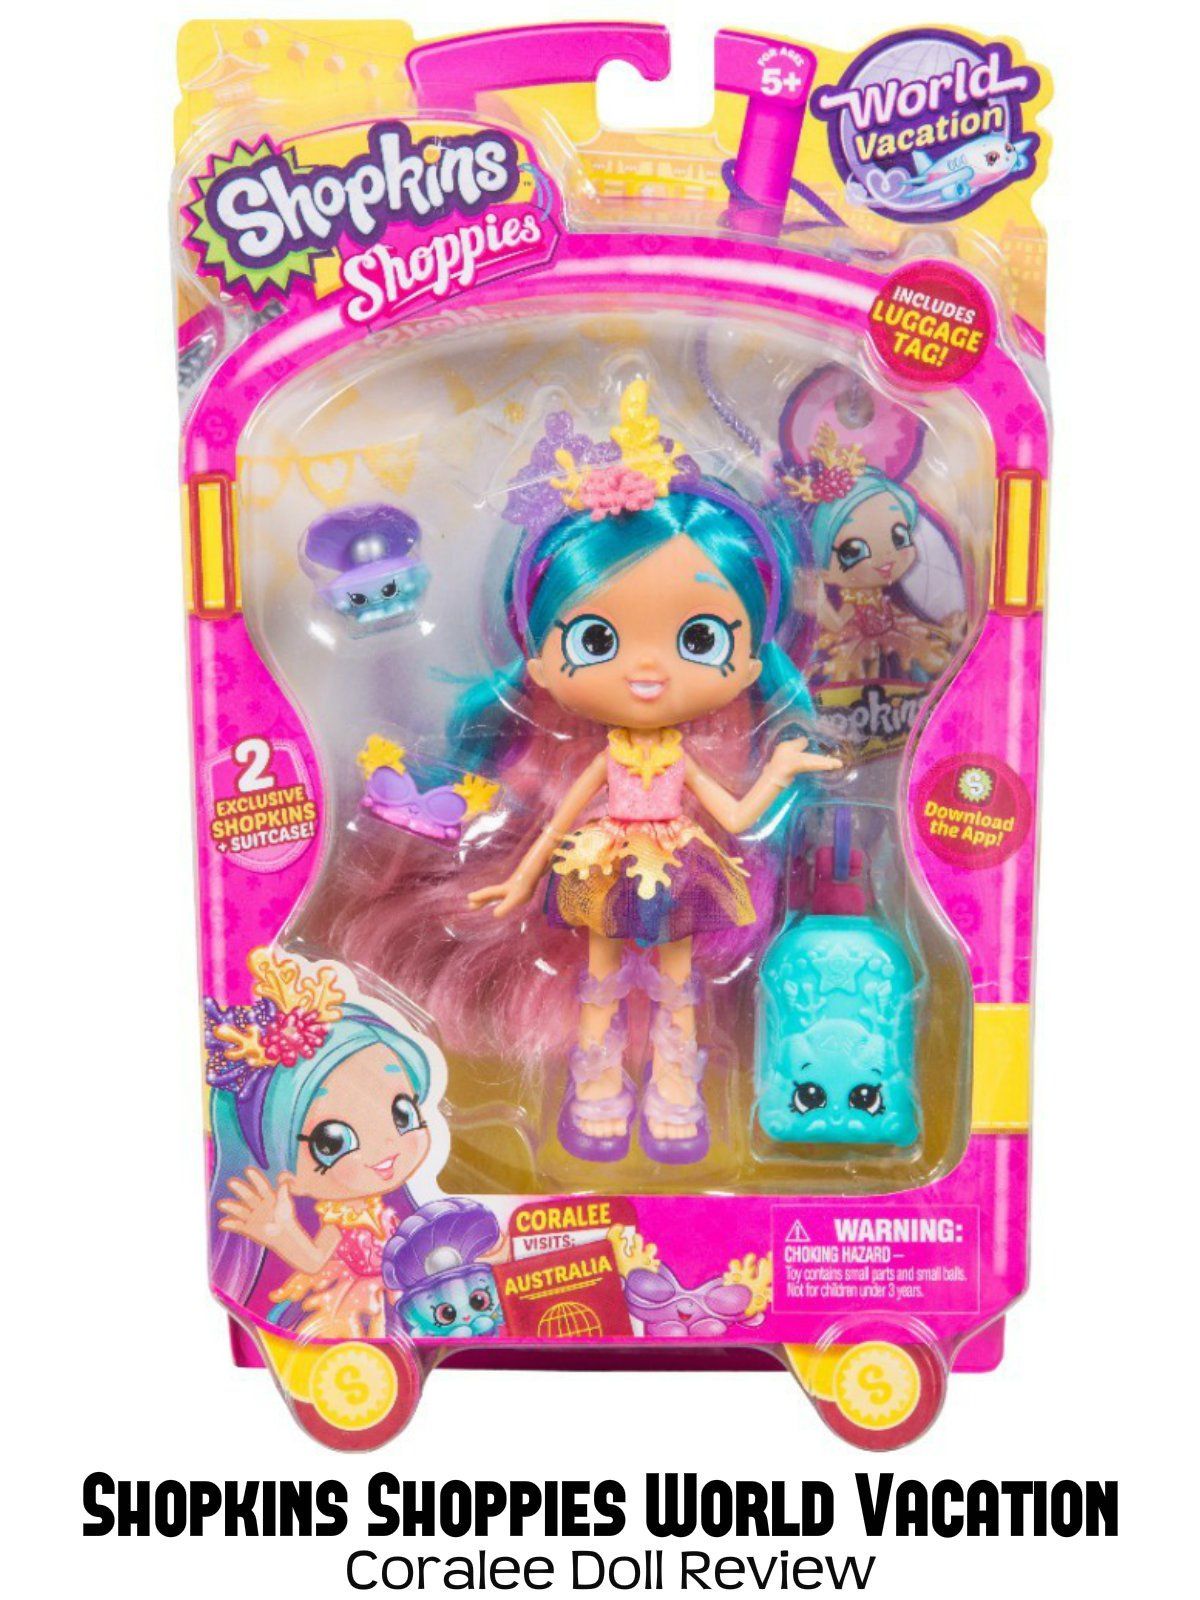 Amazon.de: Review: Shopkins Shoppies World Vacation Coralee Doll ...